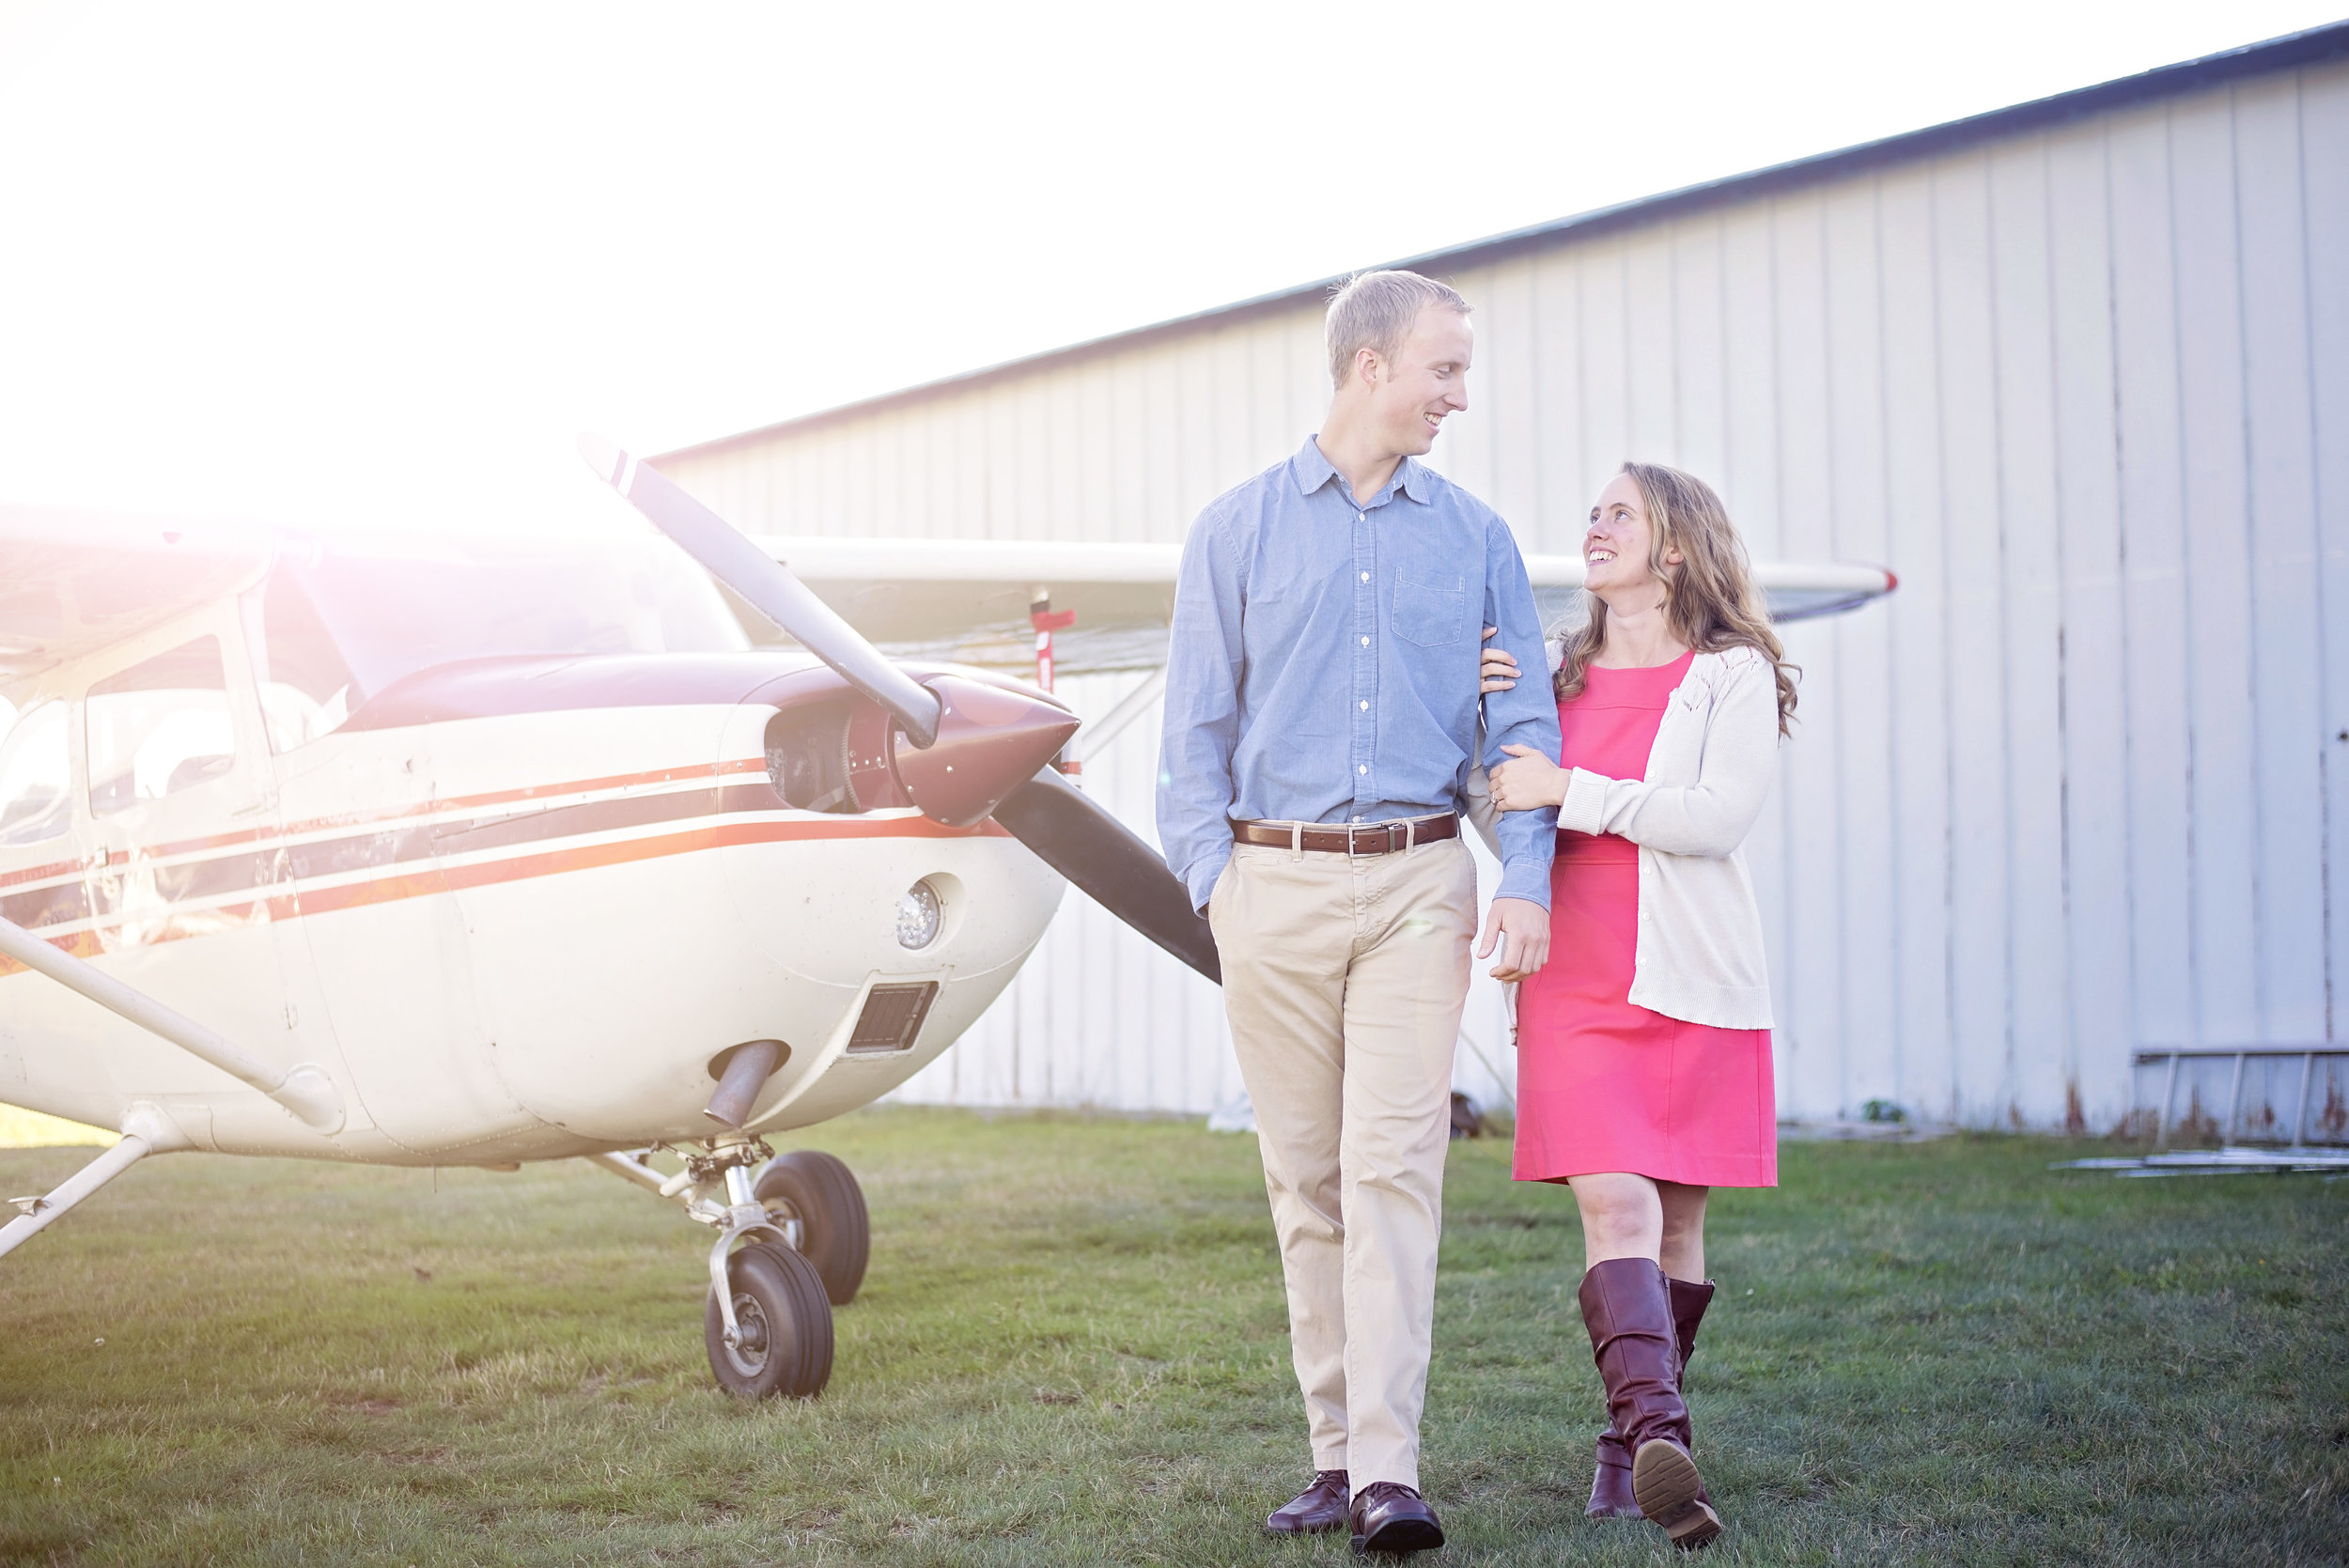 Hampton Airfield | Moriah and Jon | Engagement